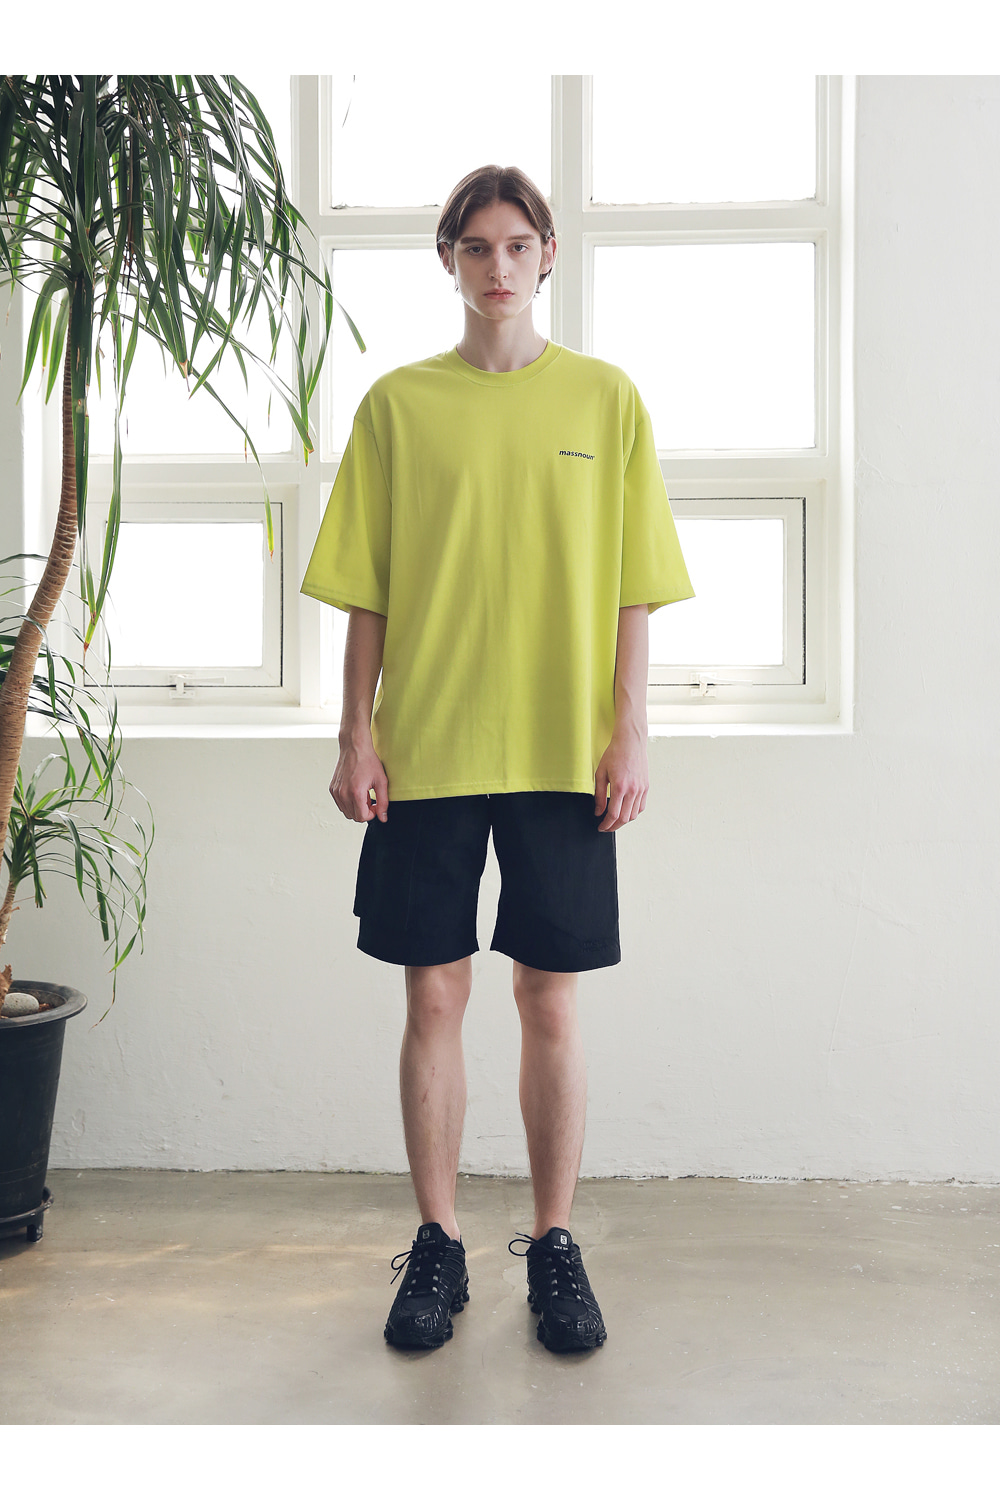 매스노운(MASSNOUN) SIDE TWO POCKET SHORT PANTS MSNSP004-BK